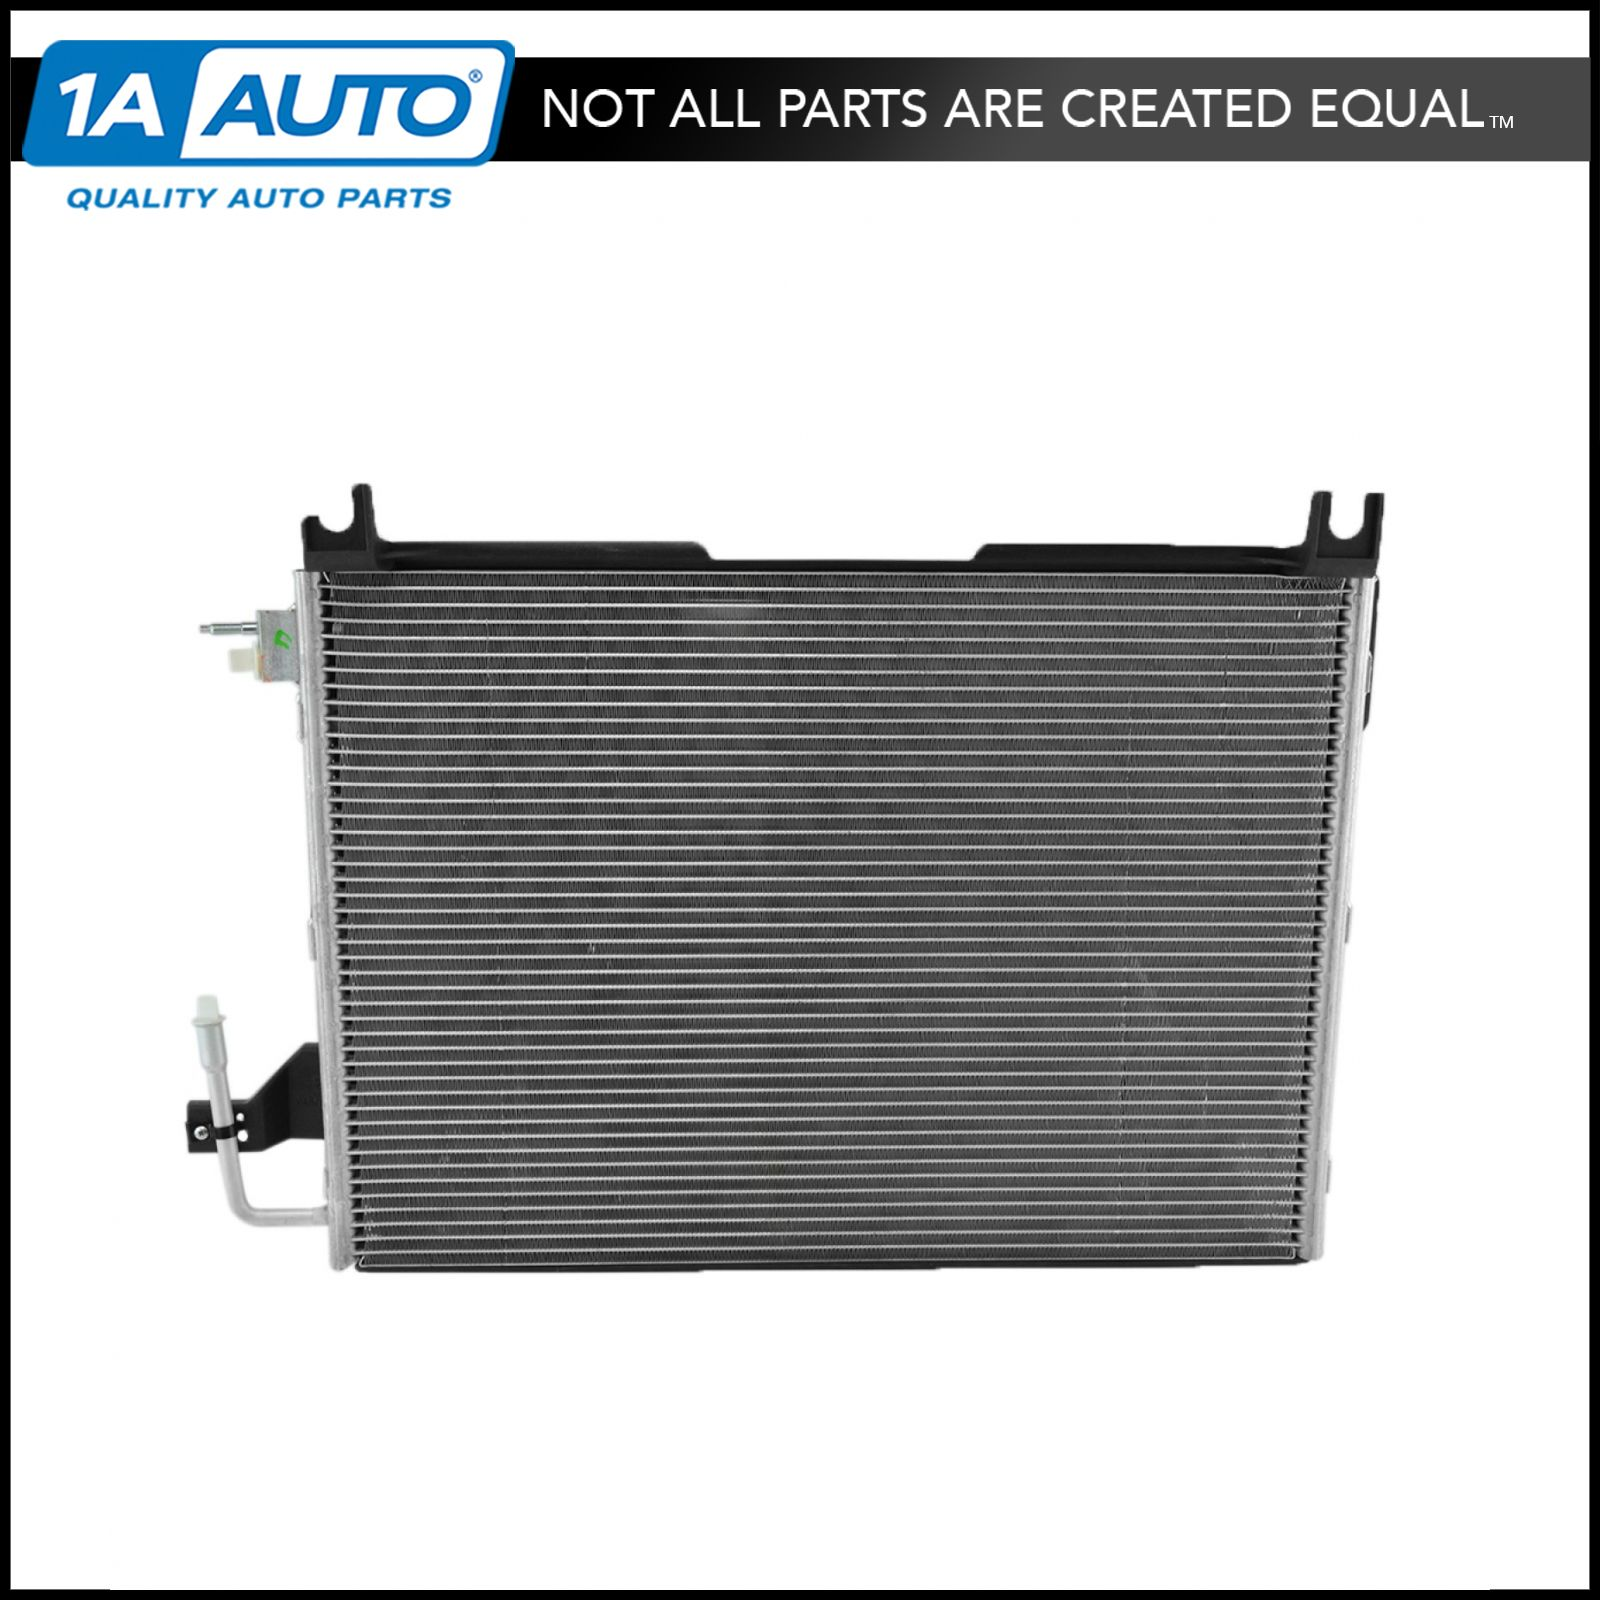 A//C Condenser For Ram 1500 V6 V8 Fast Free Shipping Best Quality